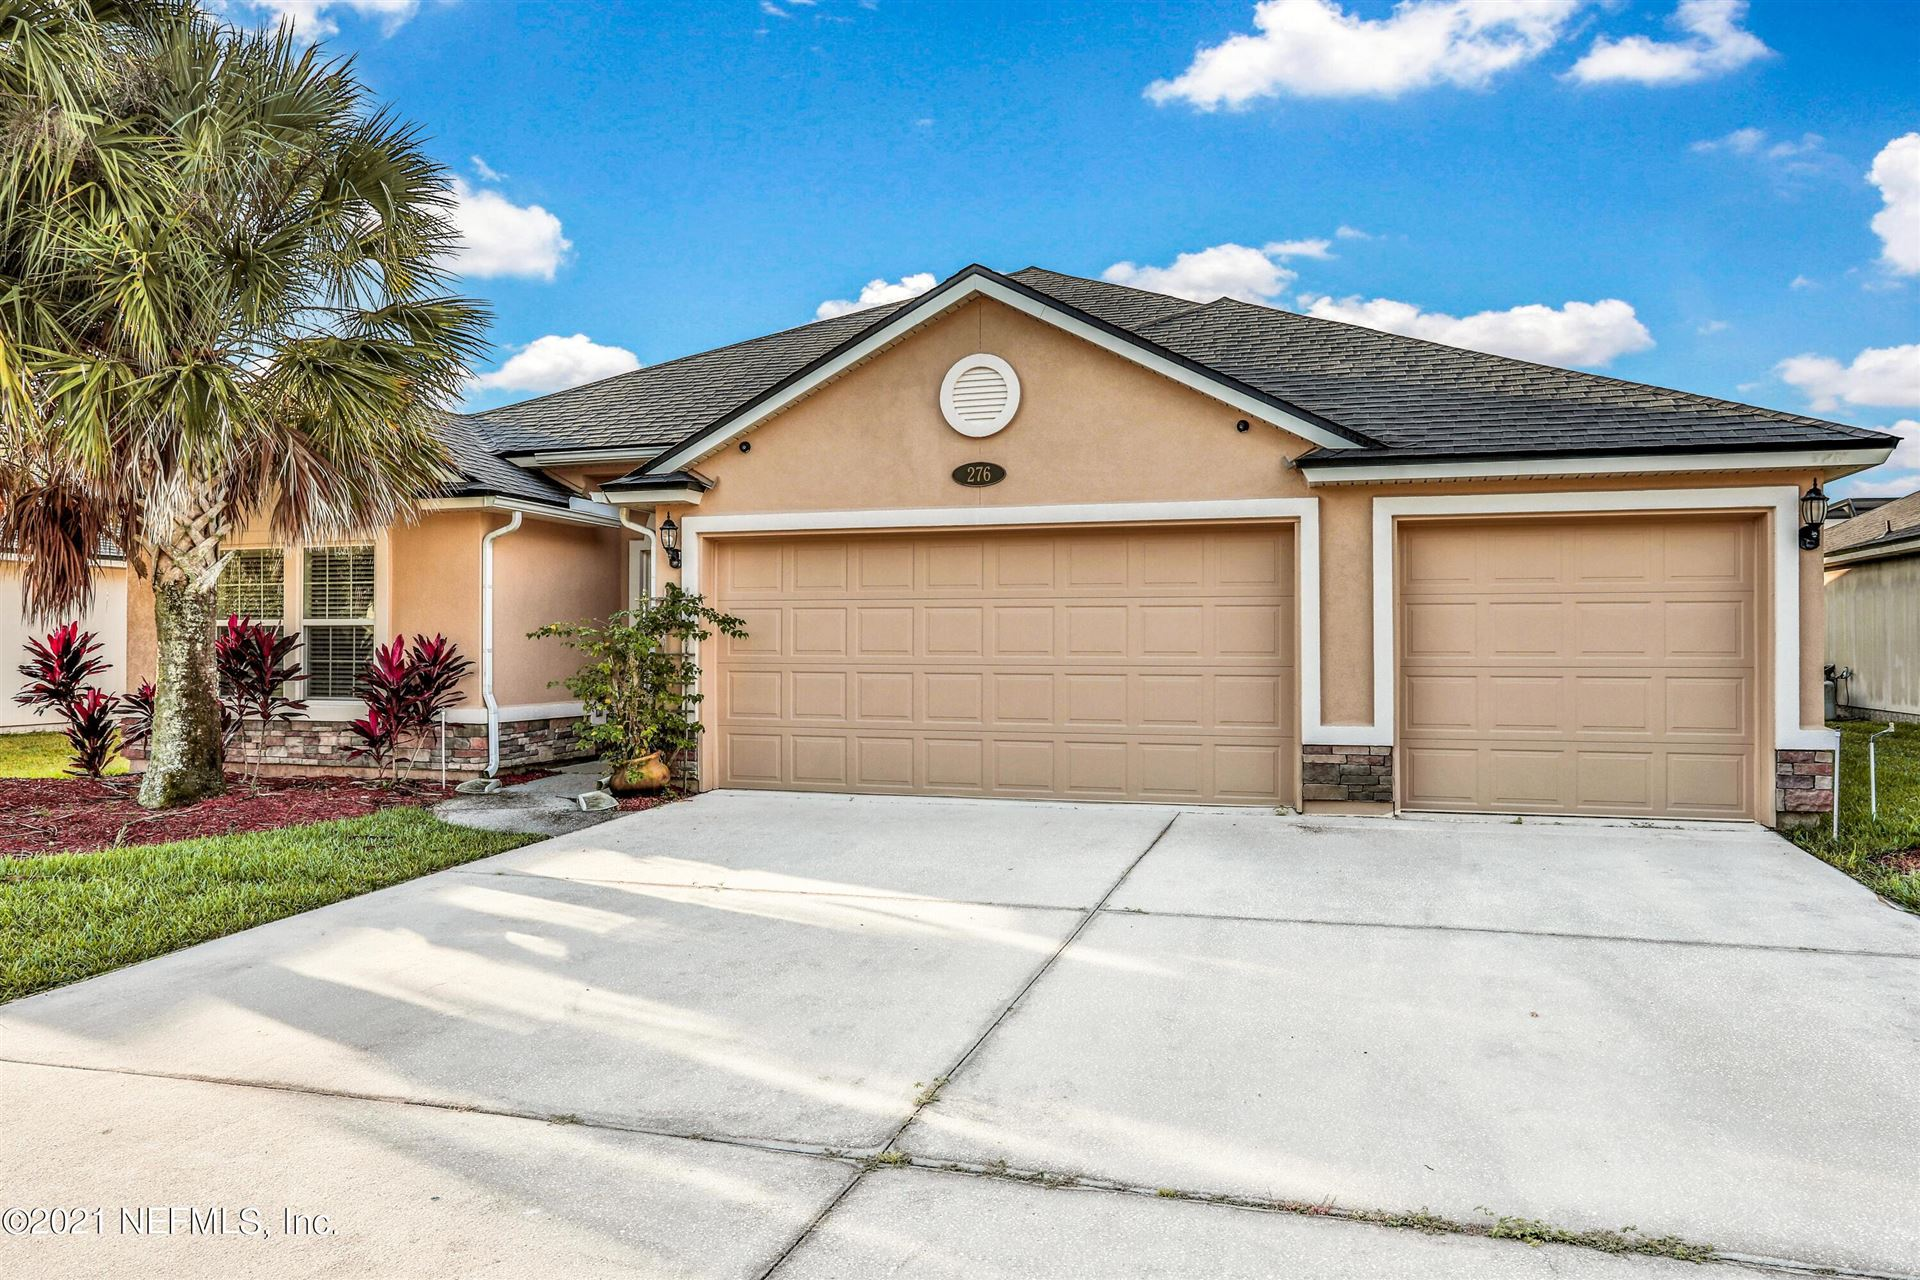 Photo of 276 W ADELAIDE DR, FRUIT COVE, FL 32259 (MLS # 1136855)